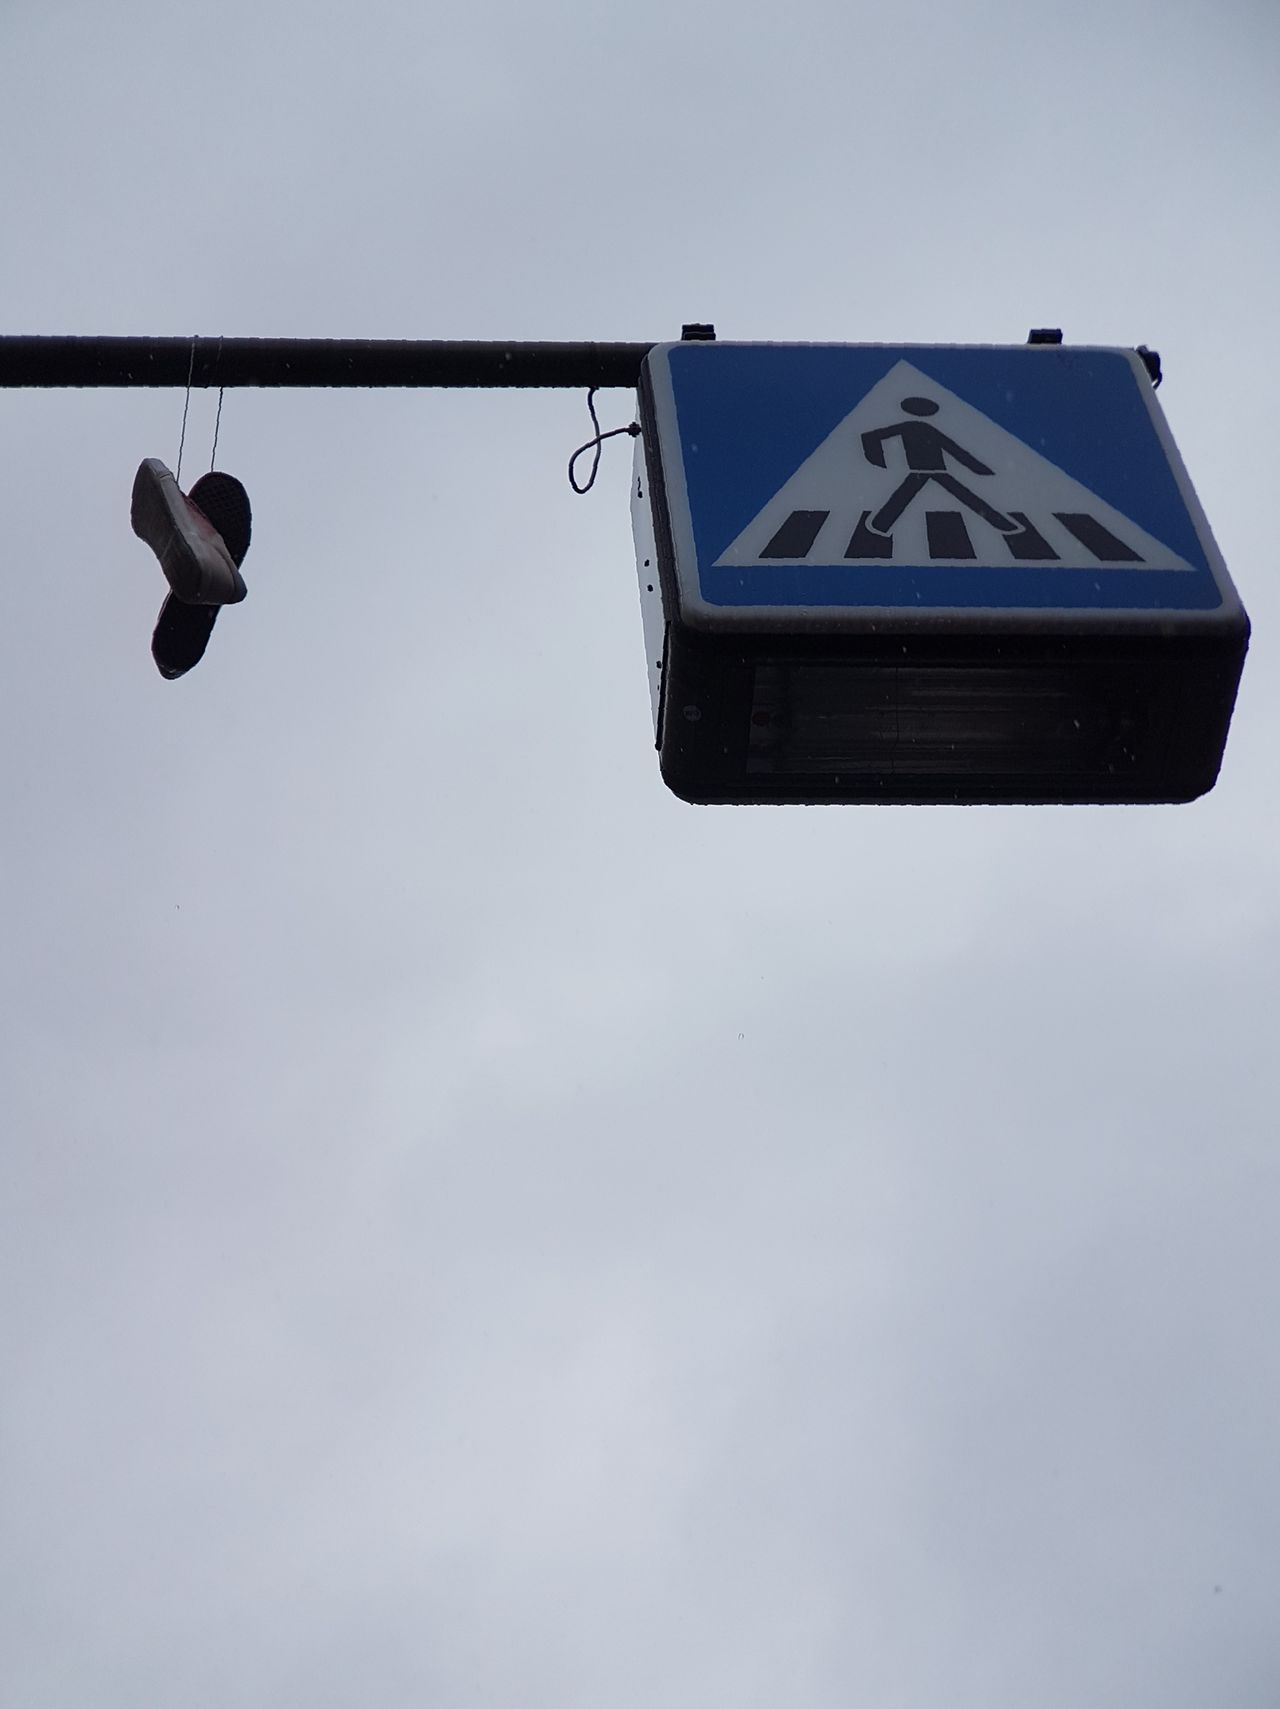 Hanging City City Street Street Sign Walking Walking Around City Signs Hanging Shoes Old Shoes GO Sign City Life Up Cover Background